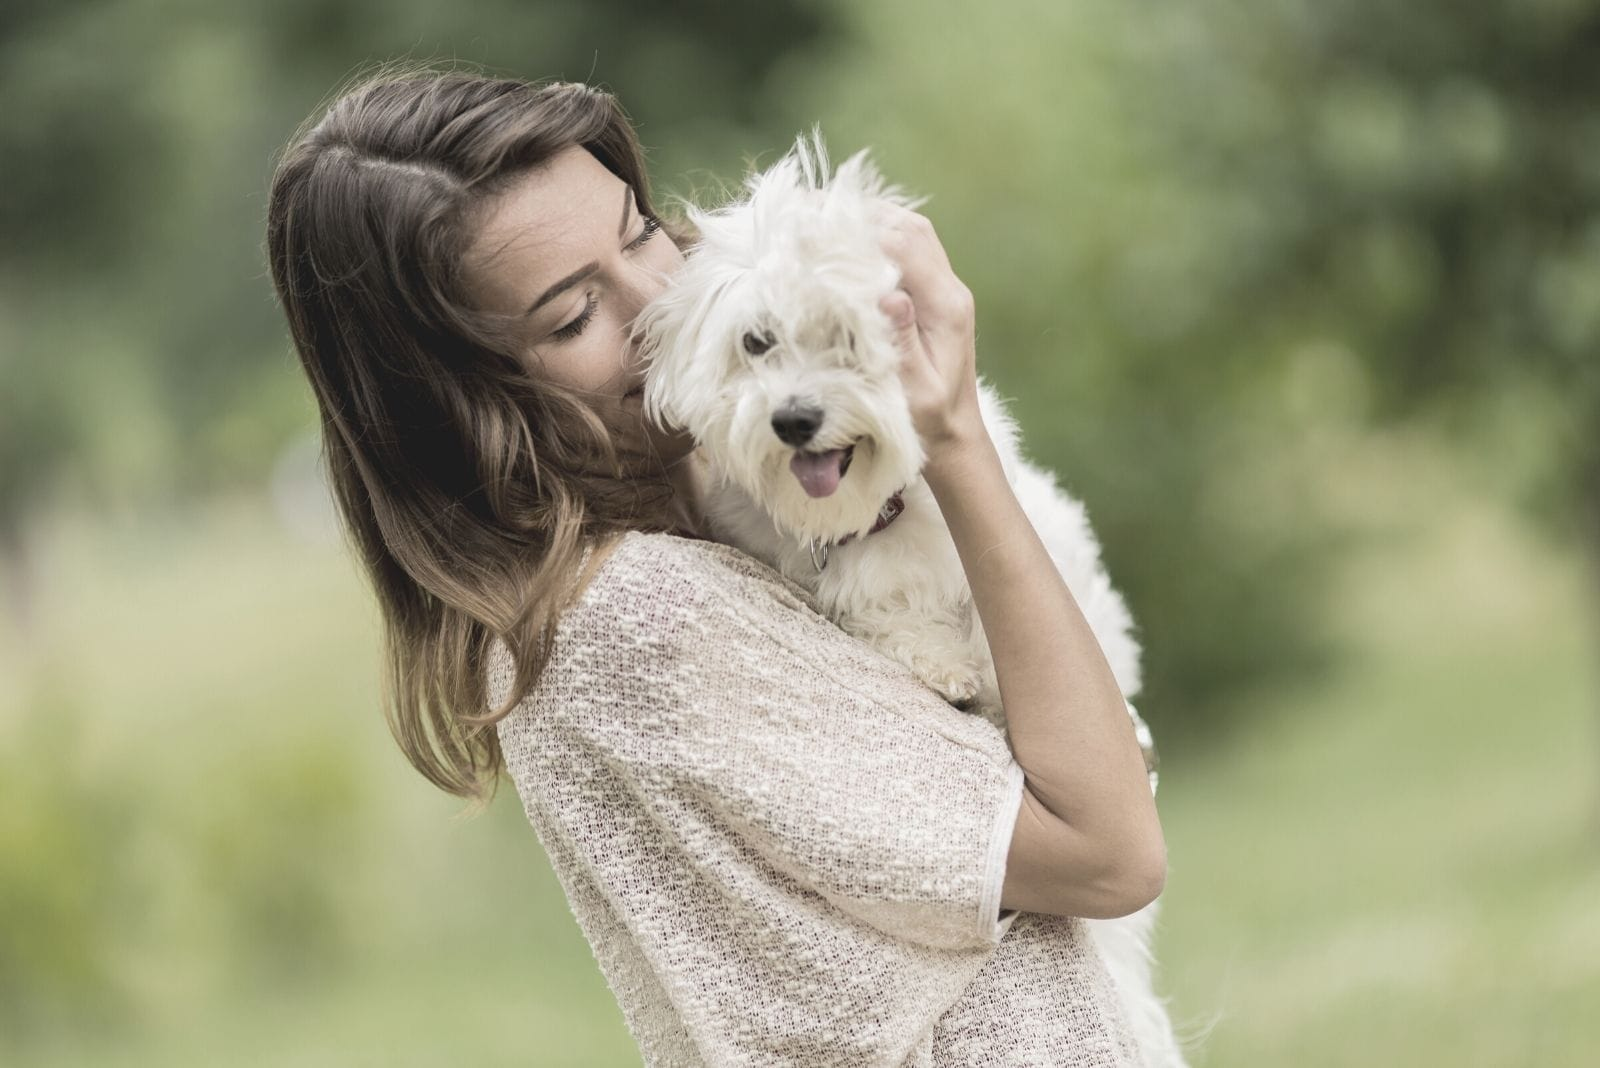 woman playing with a dog of maltese breed outdoors